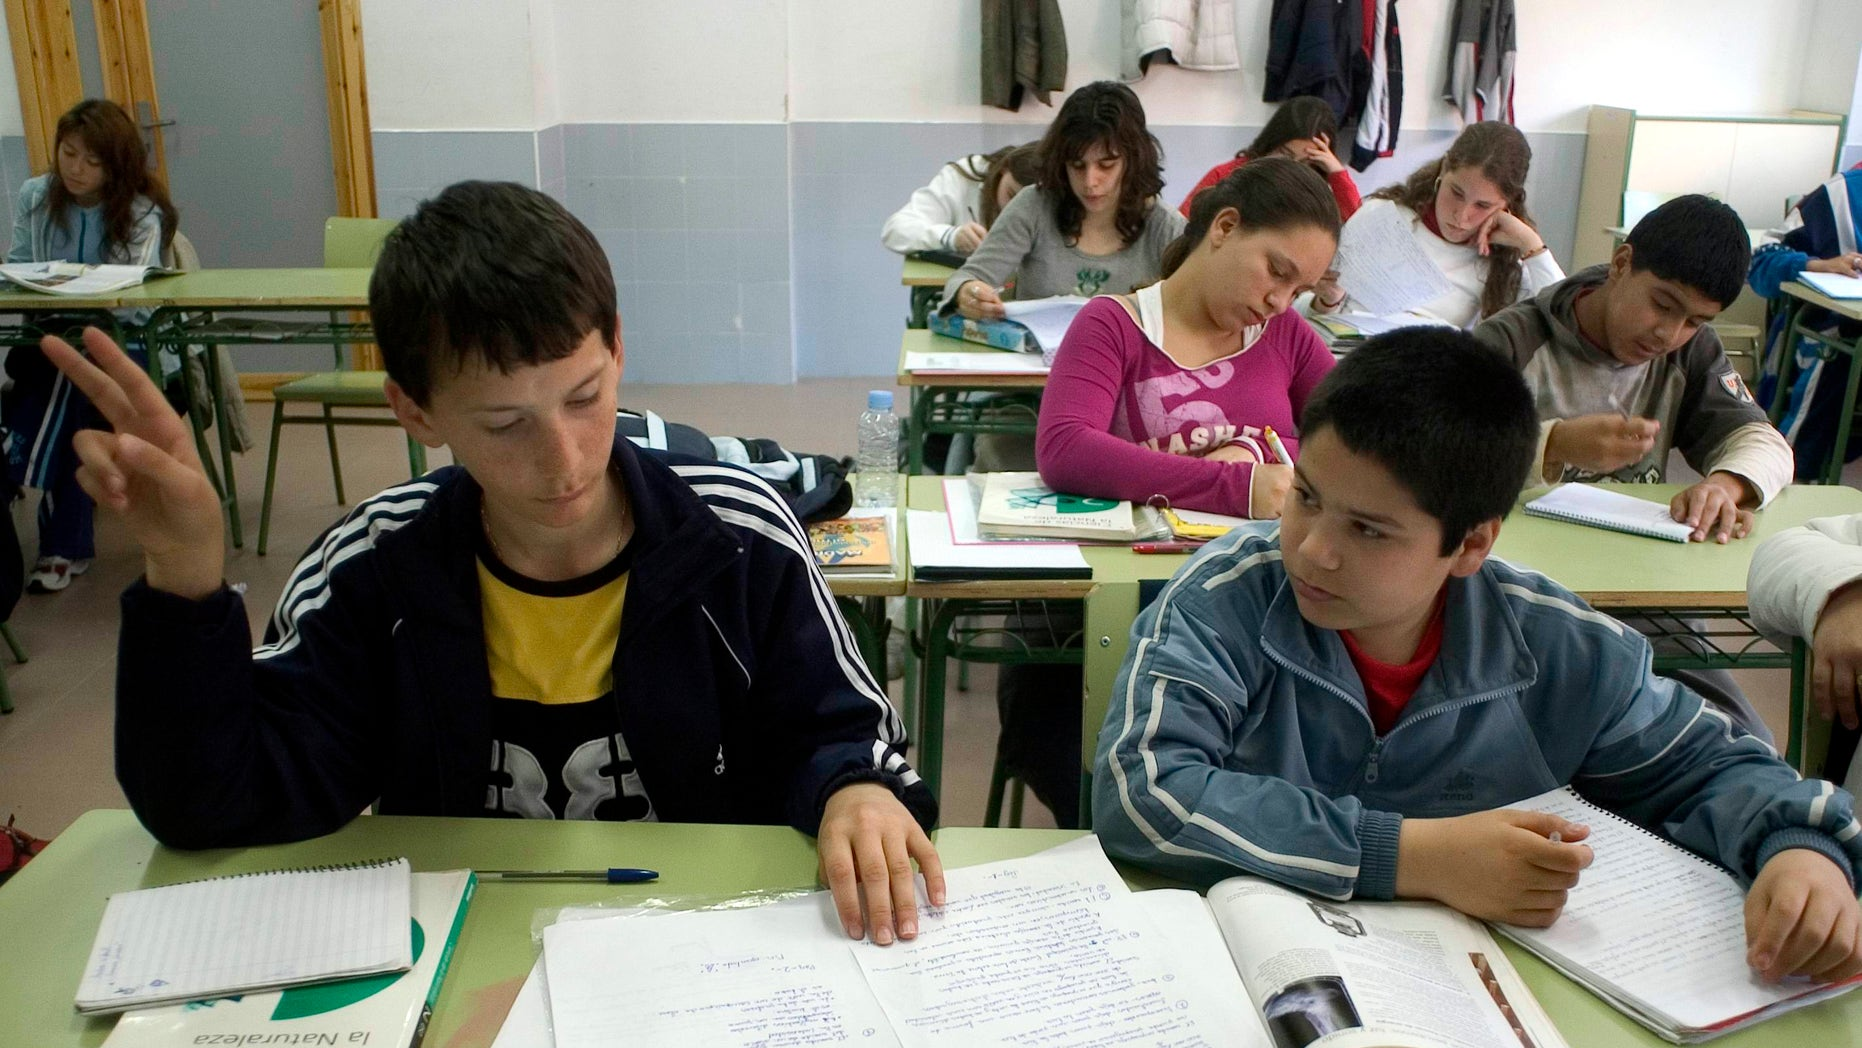 Inmigrants at school. Inmigrant children from several nacionalities in a Madrid school.  (Photo by Mariana Silvia Eliano/Cover/Getty Images)